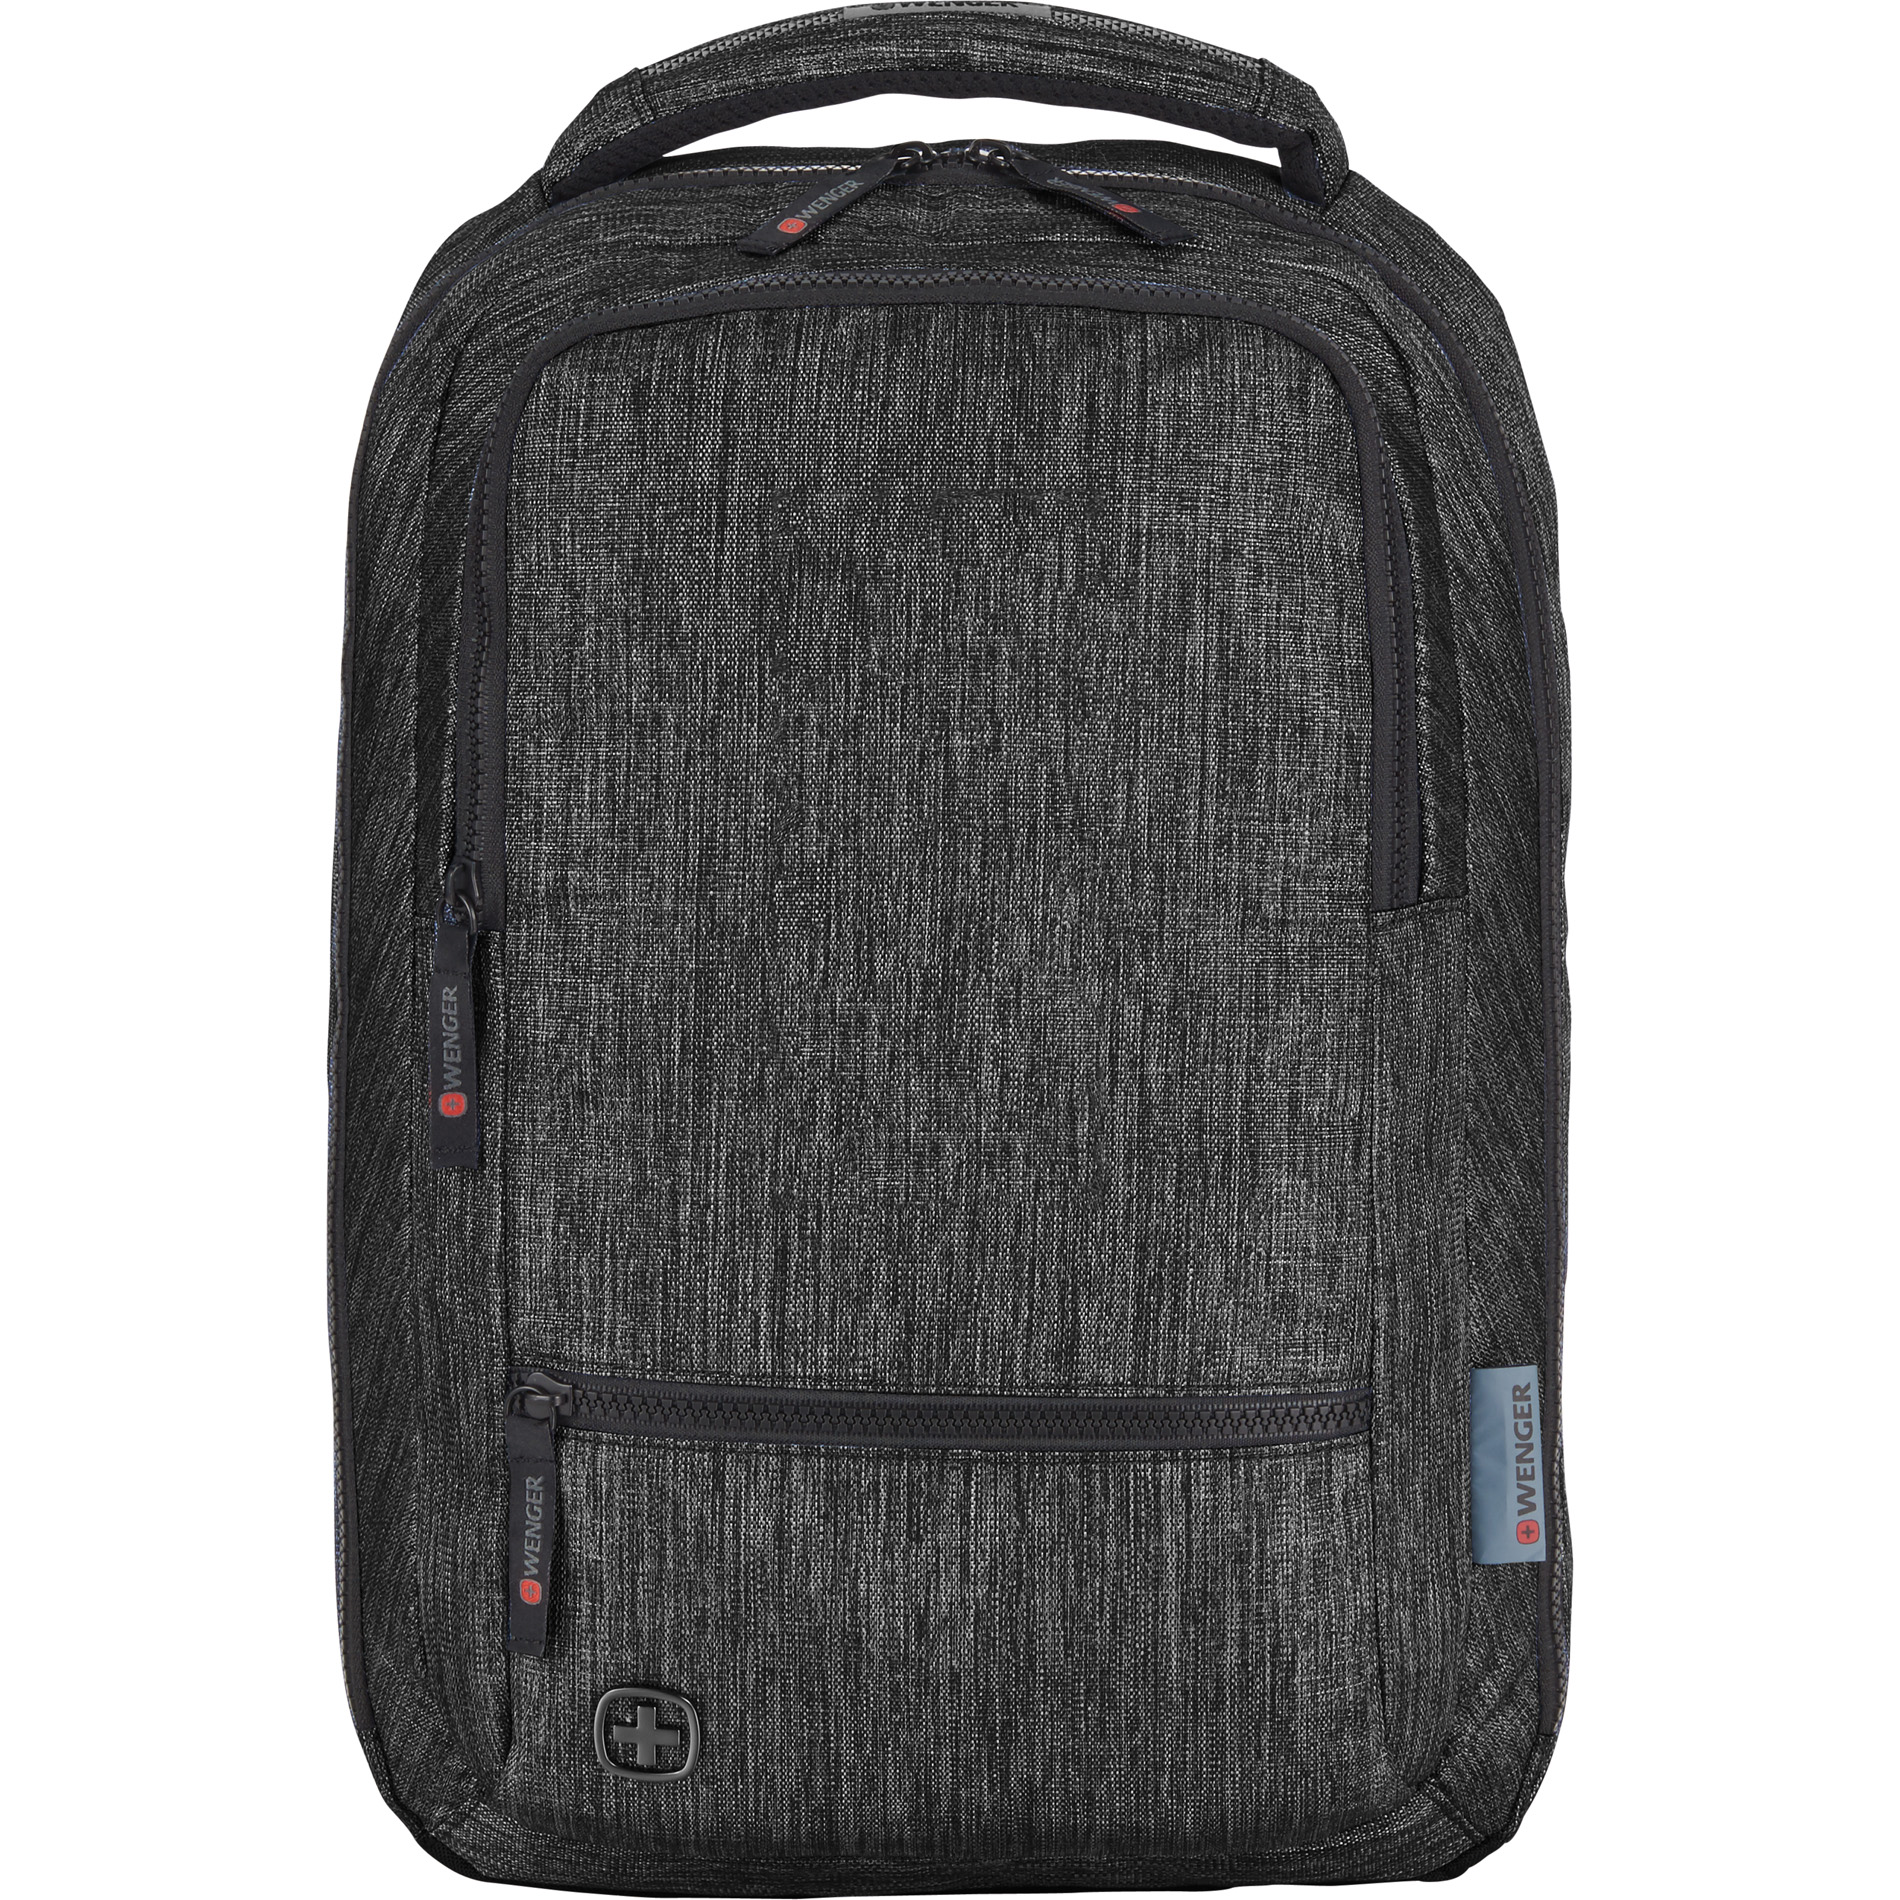 "Wenger 9550-48 - Meter 14"" Laptop Backpack"